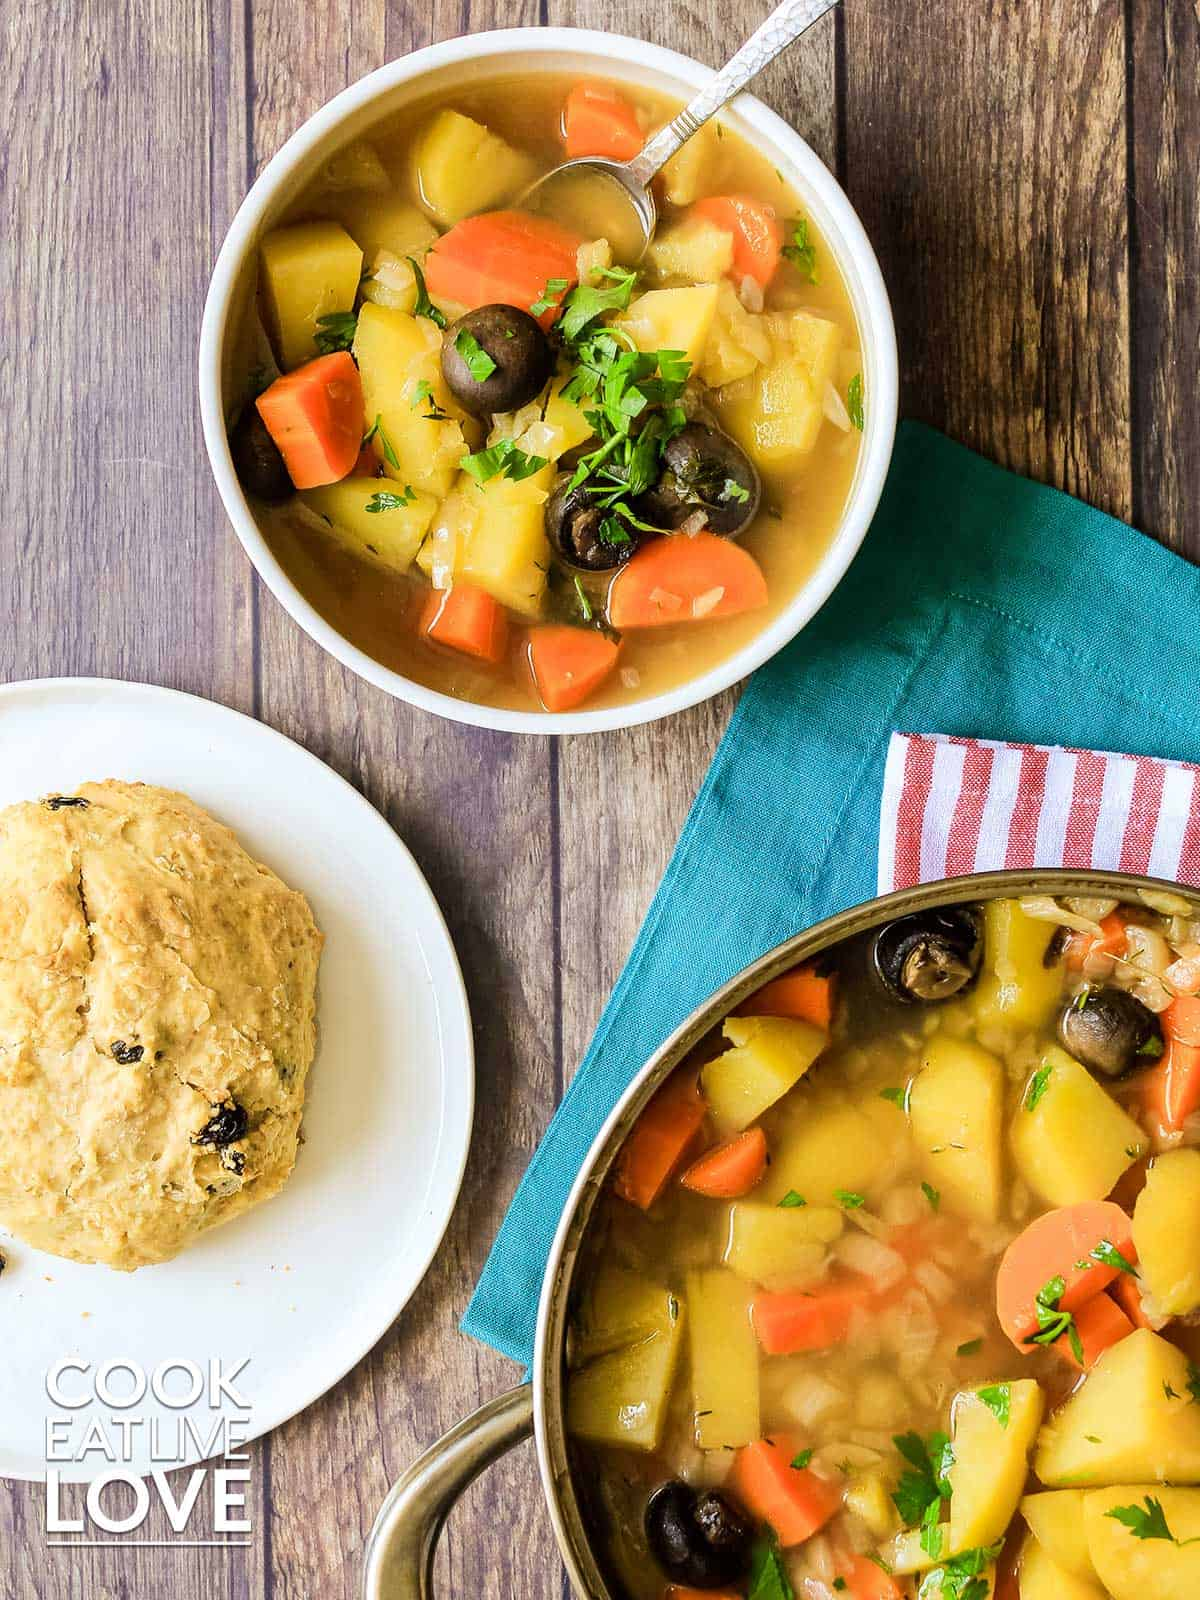 Overhead view of Vegan Irish stew served up in white bowl with soda bread